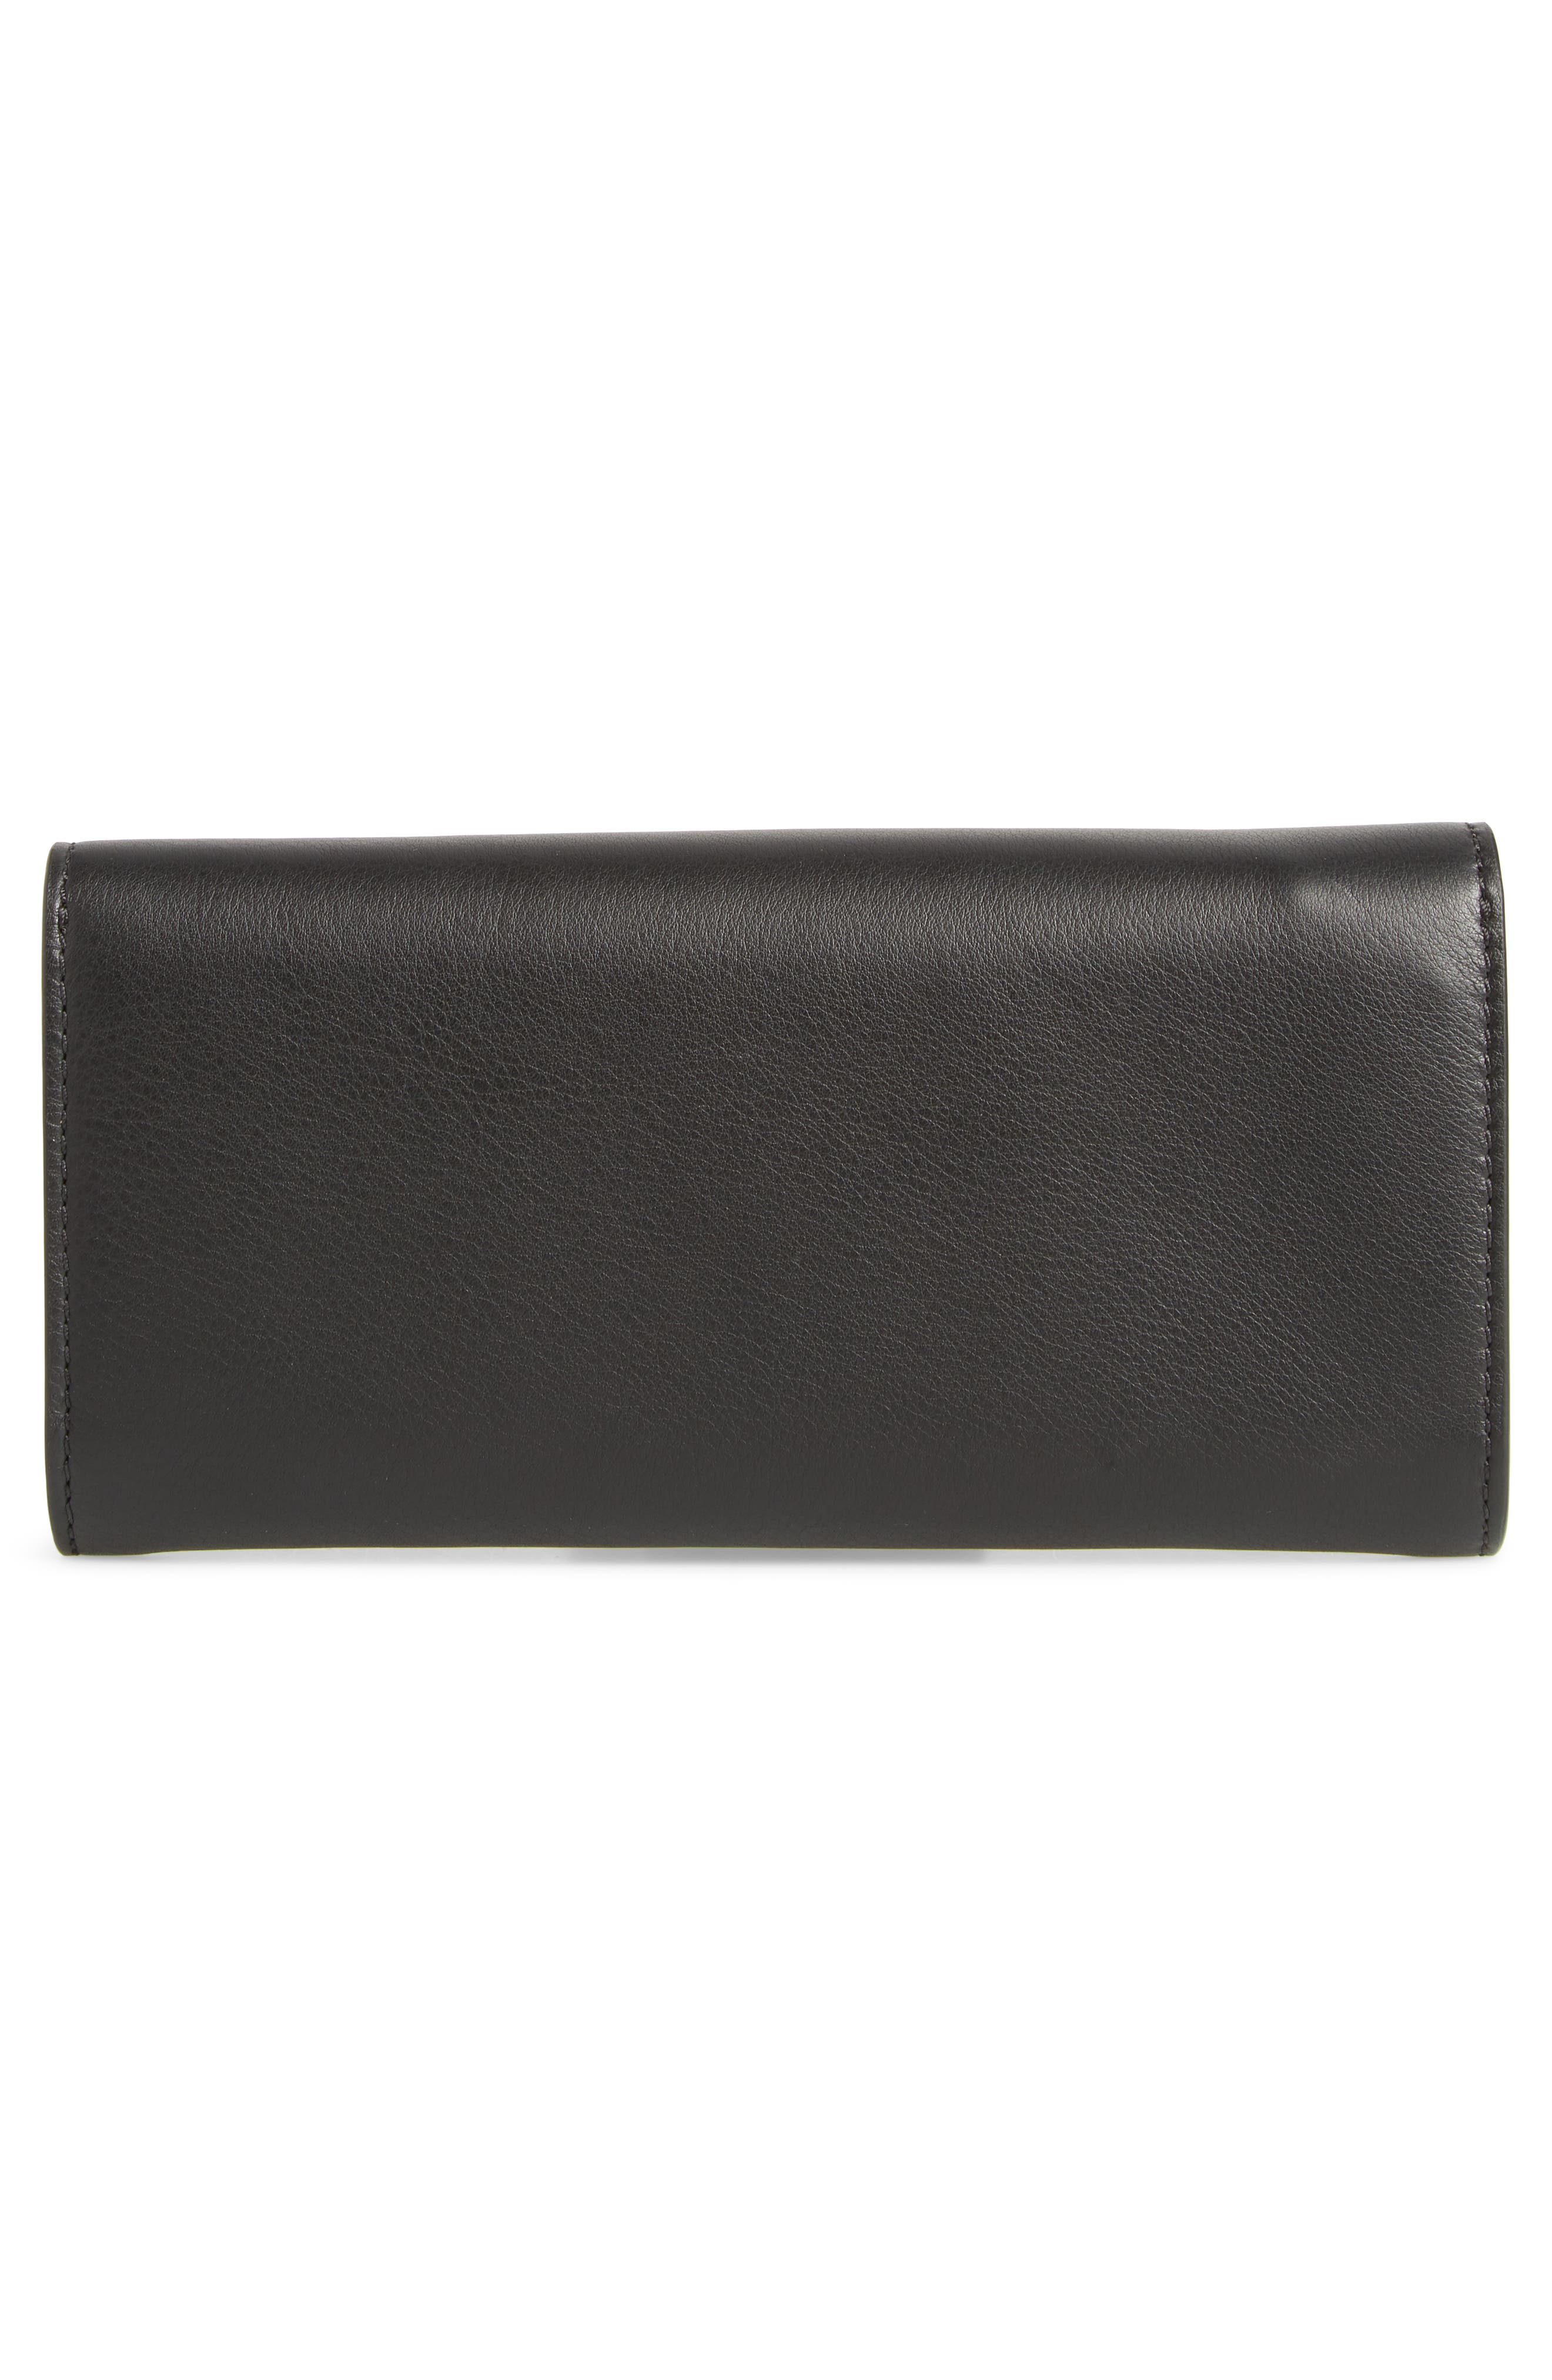 Crest Embossed Leather Clutch,                             Alternate thumbnail 3, color,                             BLACK